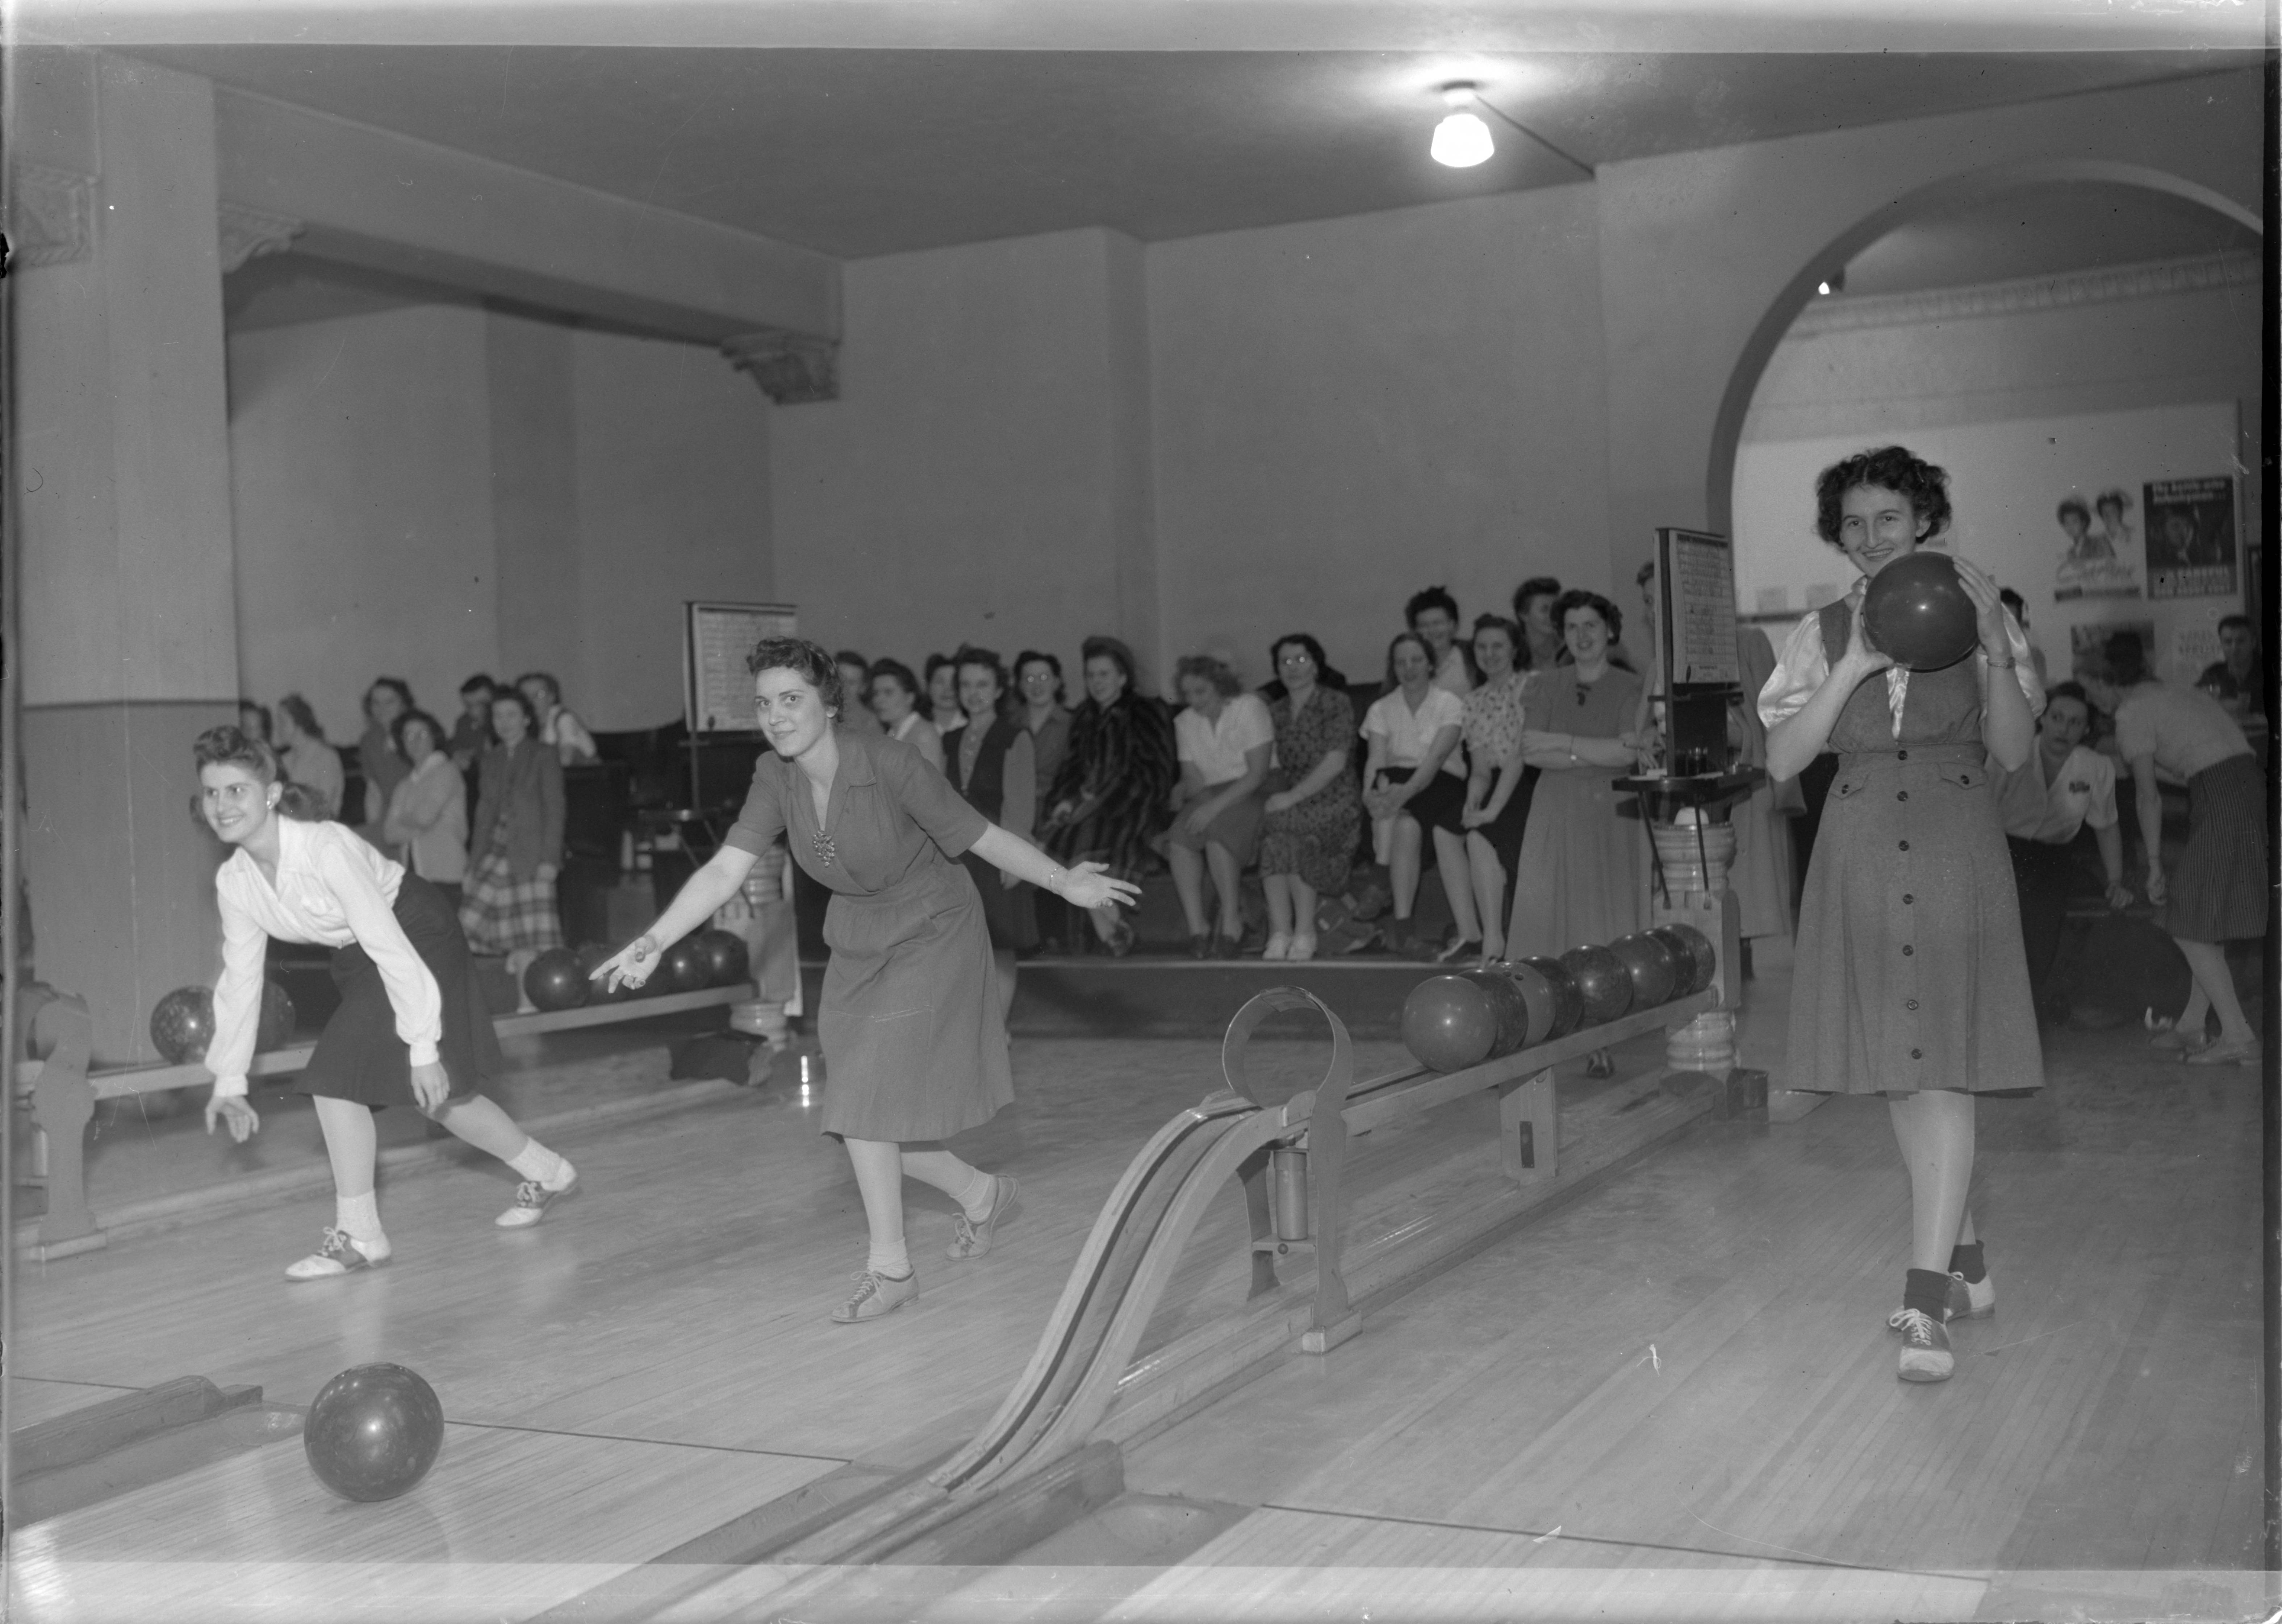 <table class=&quot;lightbox&quot;><tr><td colspan=2 class=&quot;lightbox-title&quot;>Bowling in Milwaukee</td></tr><tr><td colspan=2 class=&quot;lightbox-caption&quot;>Bowling became an incredibly popular form of indoor recreation in the 1920s and continues to be so today. These women are bowling in the 1946 Milwaukee Journal's championship tournament. </td></tr><tr><td colspan=2 class=&quot;lightbox-spacer&quot;></td></tr><tr class=&quot;lightbox-detail&quot;><td class=&quot;cell-title&quot;>Source: </td><td class=&quot;cell-value&quot;>From the Roman B. Kwaniewski Photographs Collection, Archives. University of Wisconsin-Milwaukee Libraries. <br /><a href=&quot;https://collections.lib.uwm.edu/digital/collection/mke-polonia/id/31829/rec/47&quot; target=&quot;_blank&quot;>University of Wisconsin-Milwaukee Libraries</a></td></tr><tr class=&quot;filler-row&quot;><td colspan=2>&nbsp;</td></tr></table>